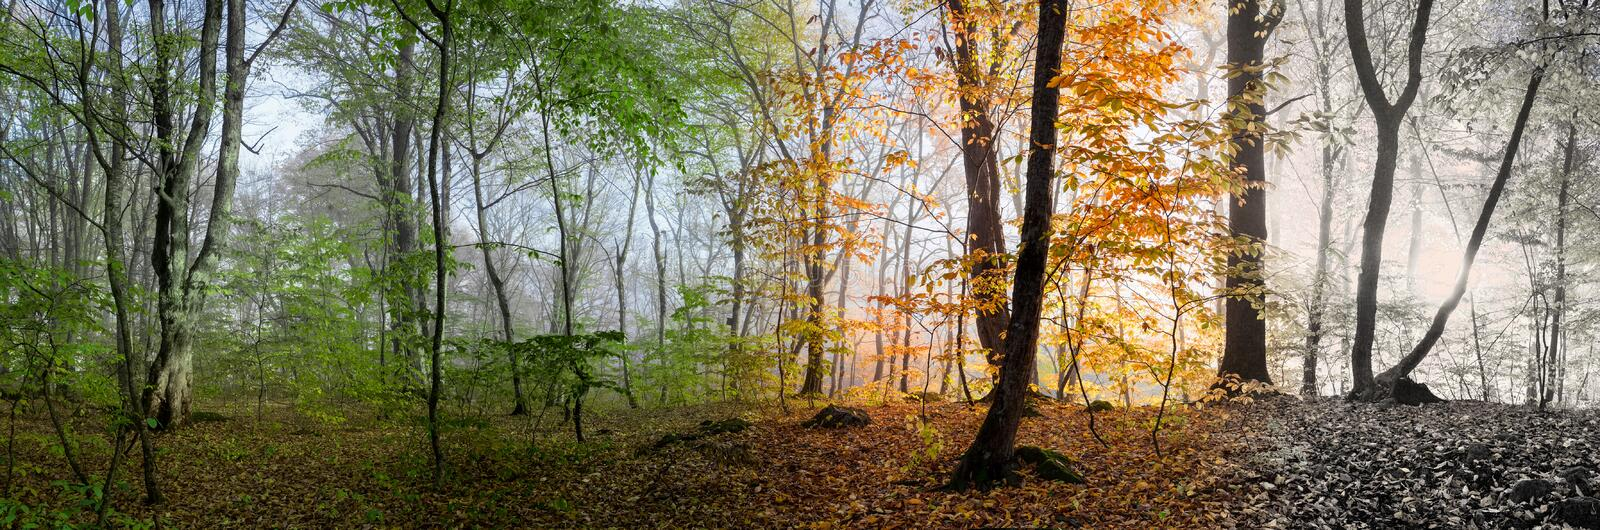 Beautiful morning scene in the forest, Change of four seasons stock photos